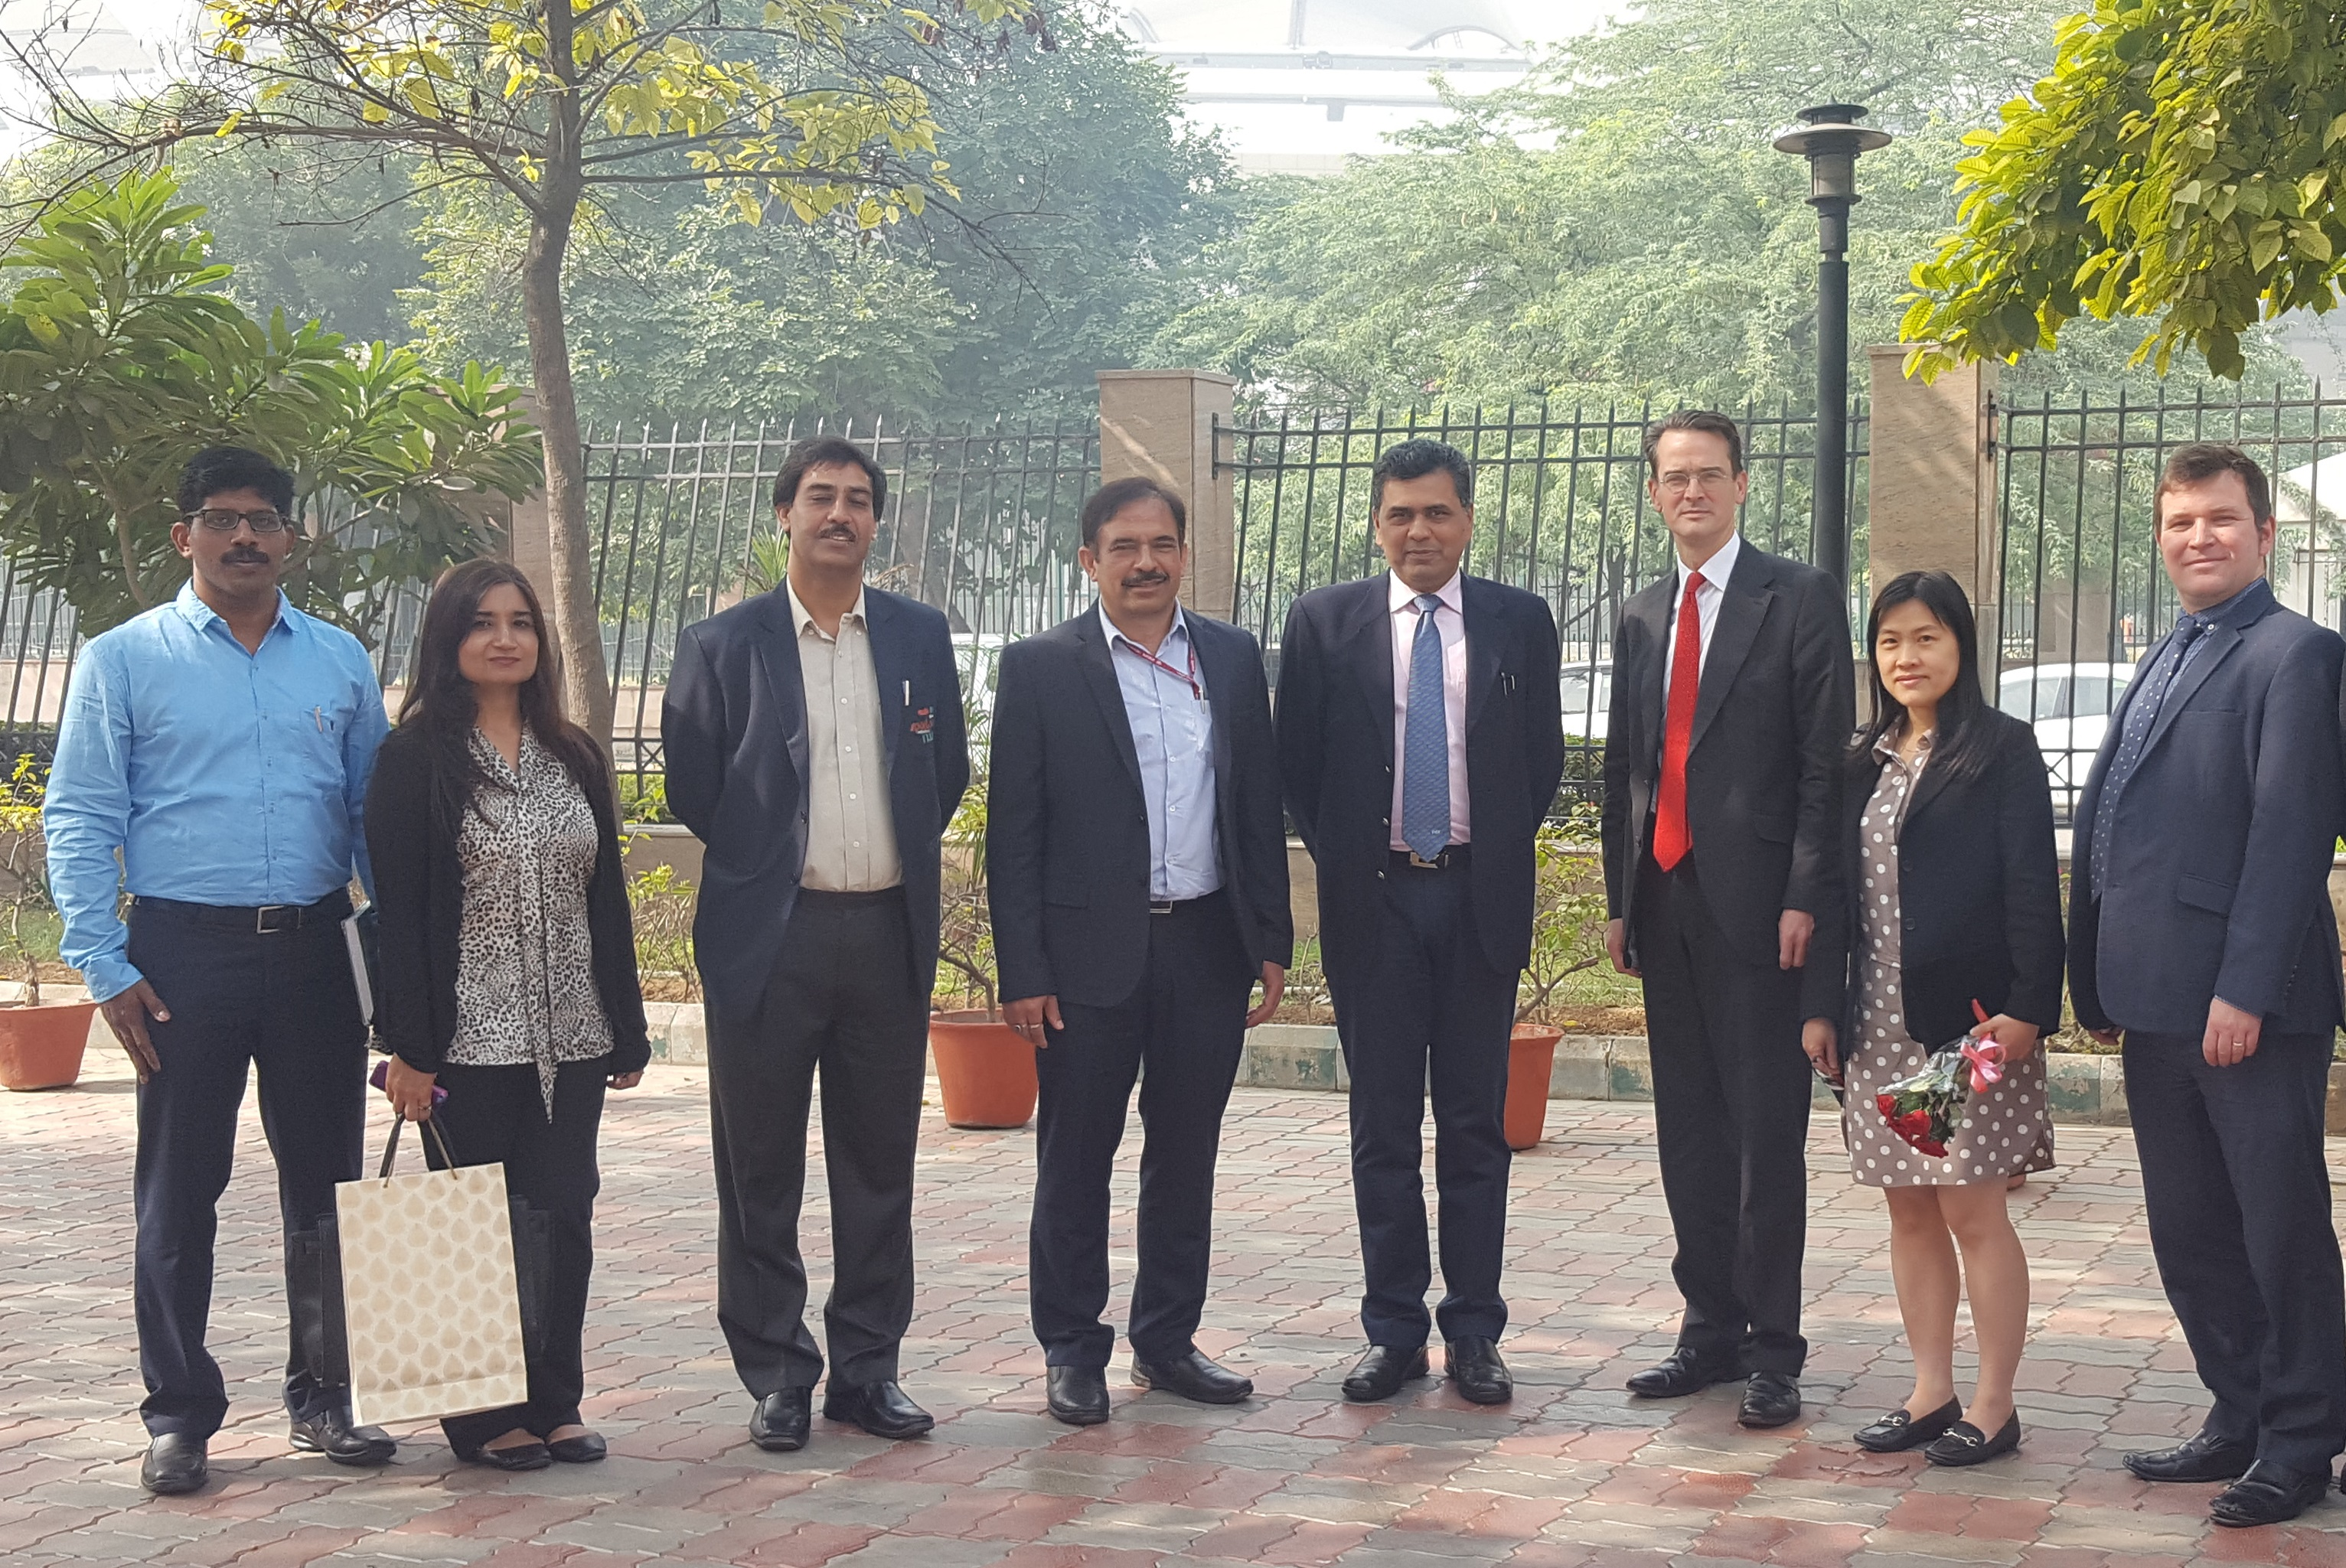 University of Birmingham and Sports Authority of India (SAI) to help improve the sporting performance of India's athletes